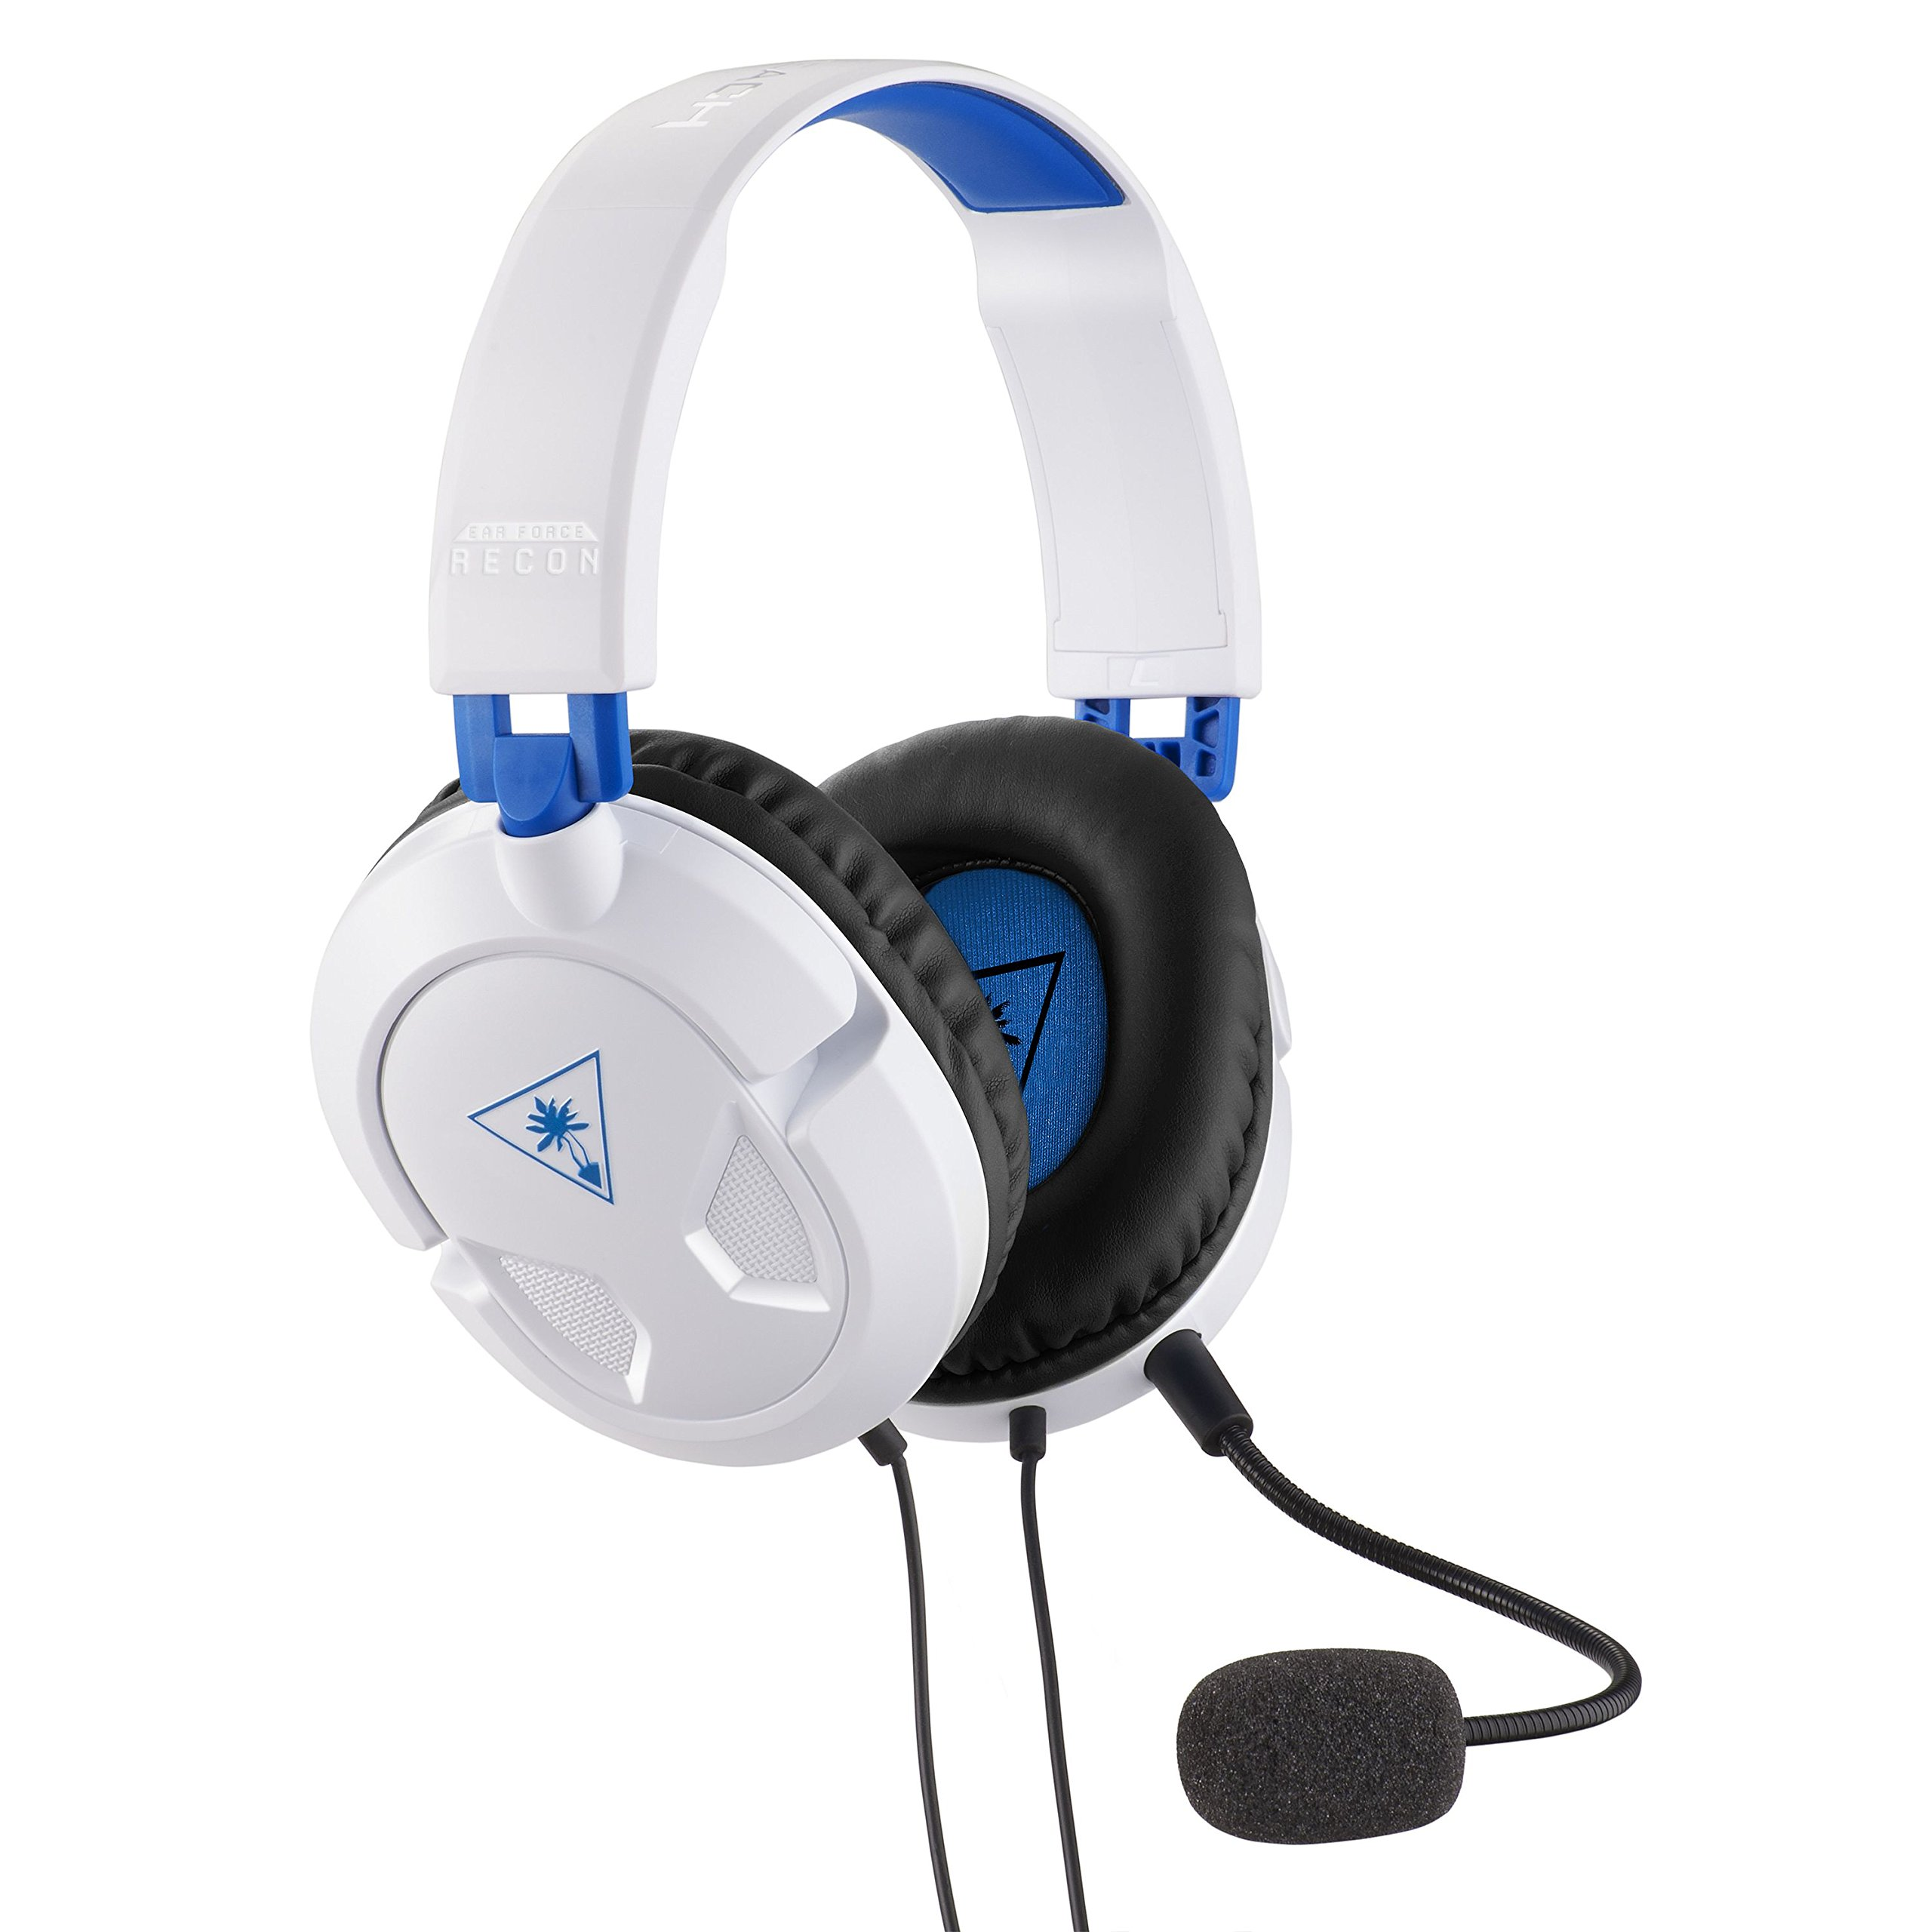 Turtle Beach Ear Force Recon 50P White Stereo Gaming Headset - PS4 and Xbox One (compatible w/ Xbox One controller w/ 3.5mm headset jack) by Turtle Beach